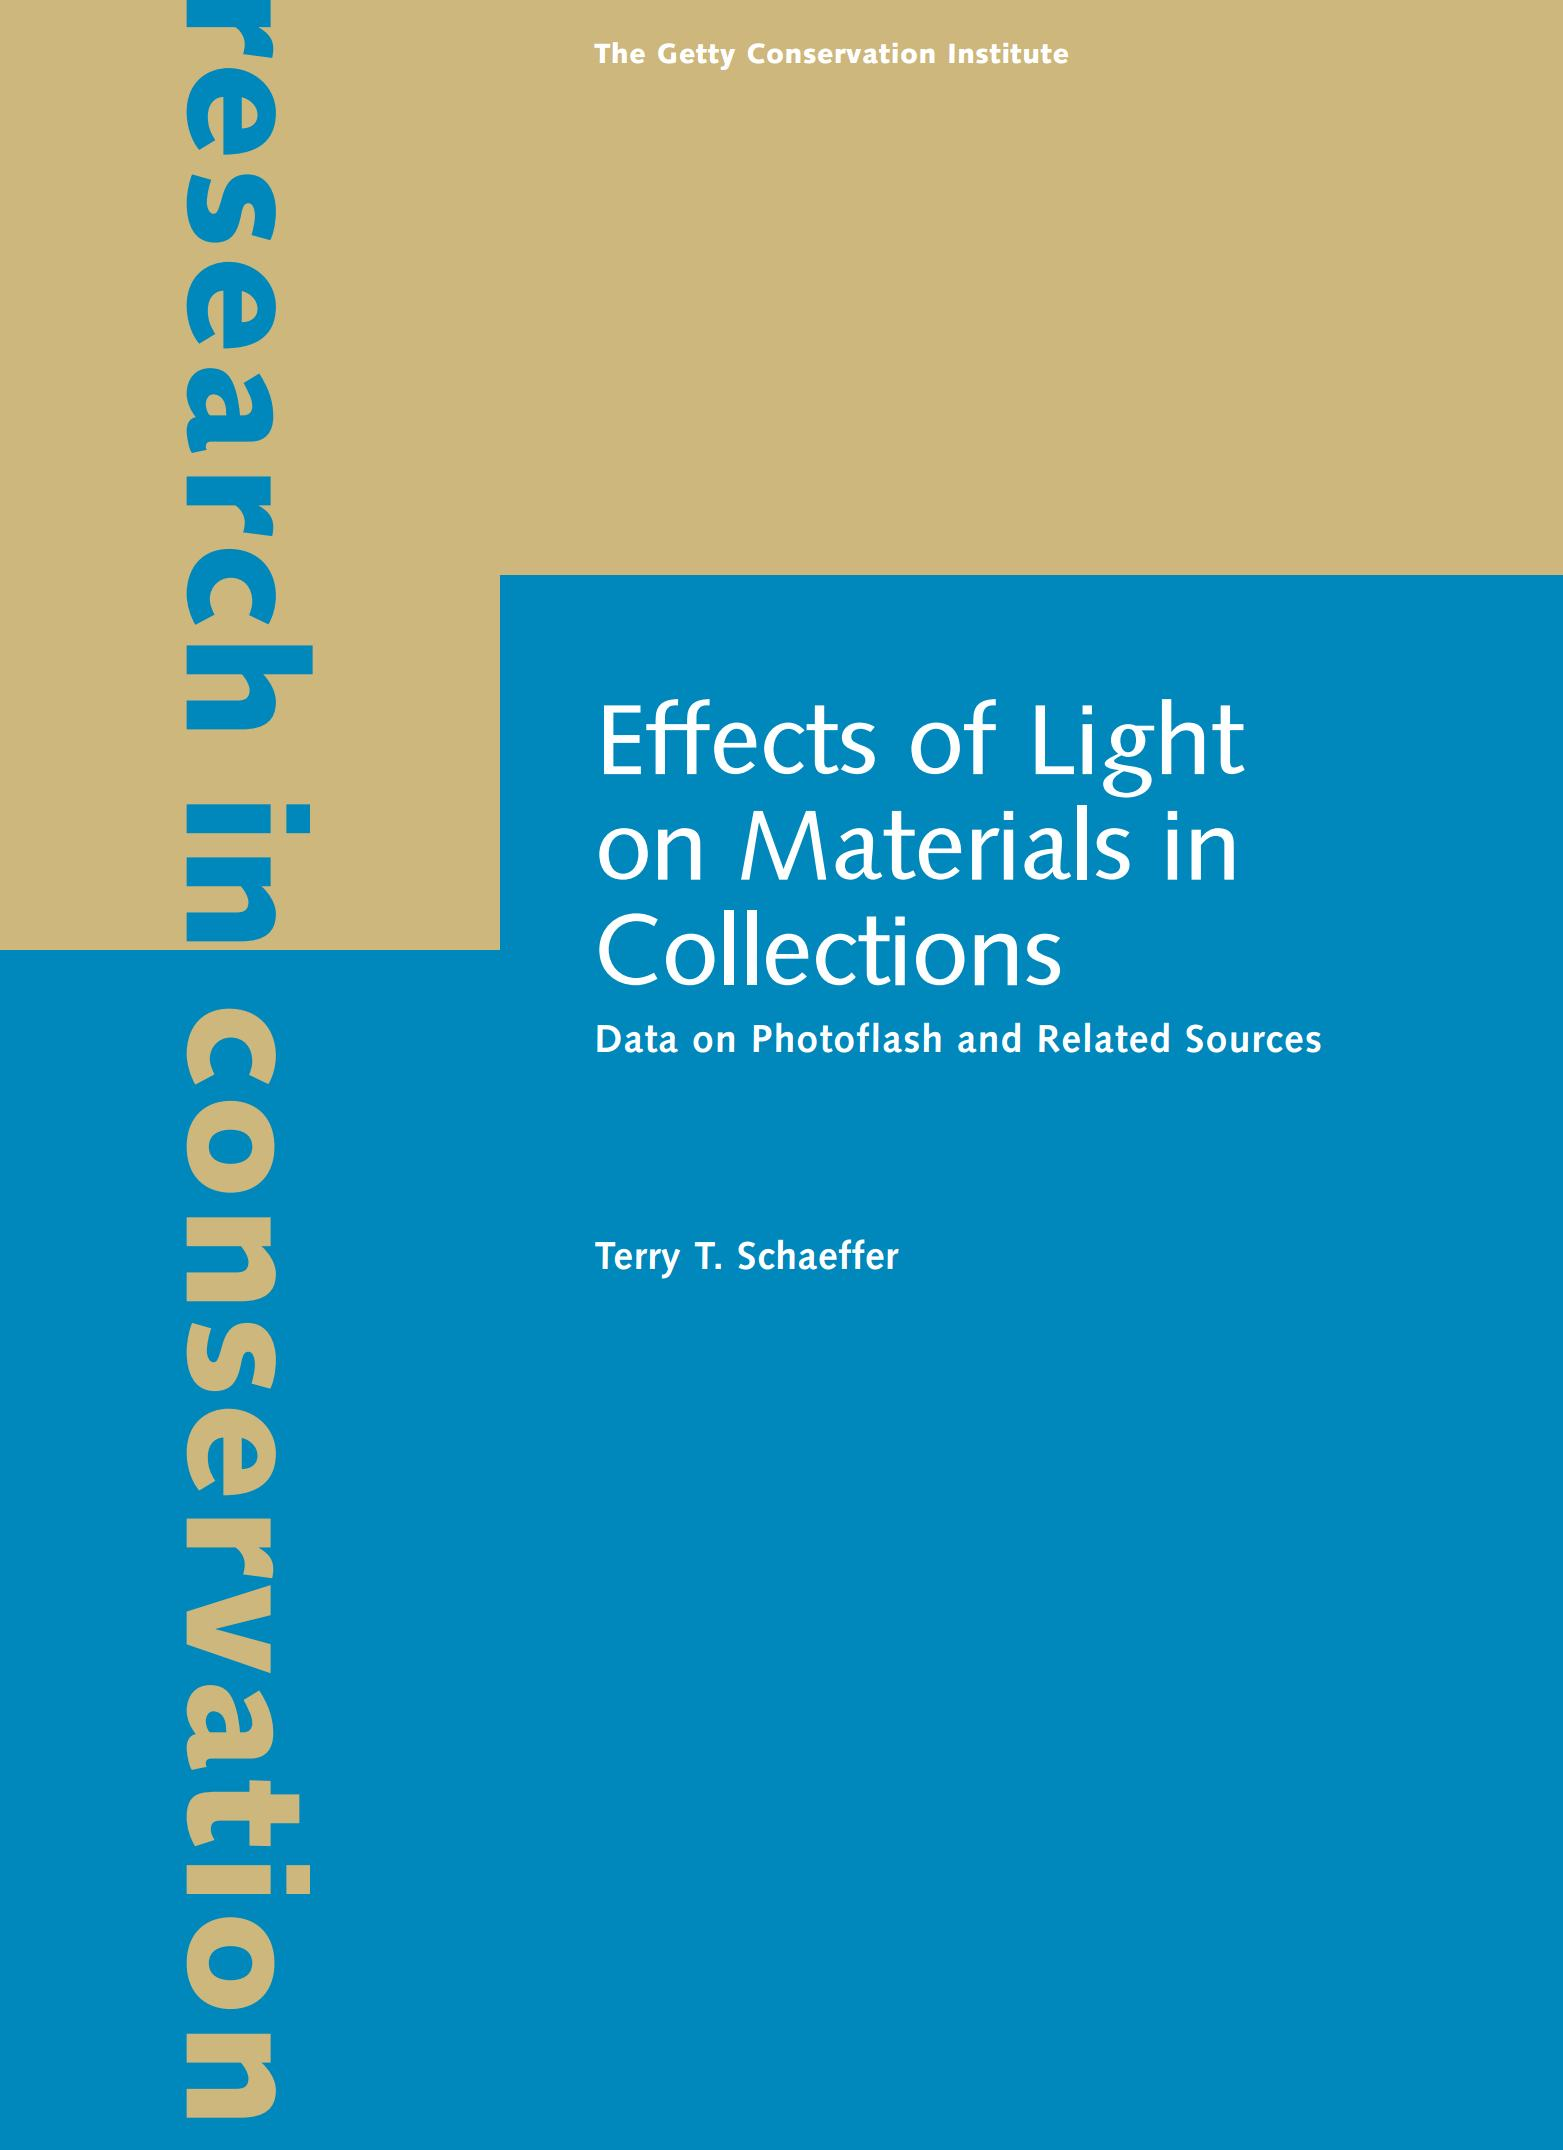 Effects of Light on Materials in Collections: Data on Photoflash and Related Sources  Terry T. Schaeffer  2001